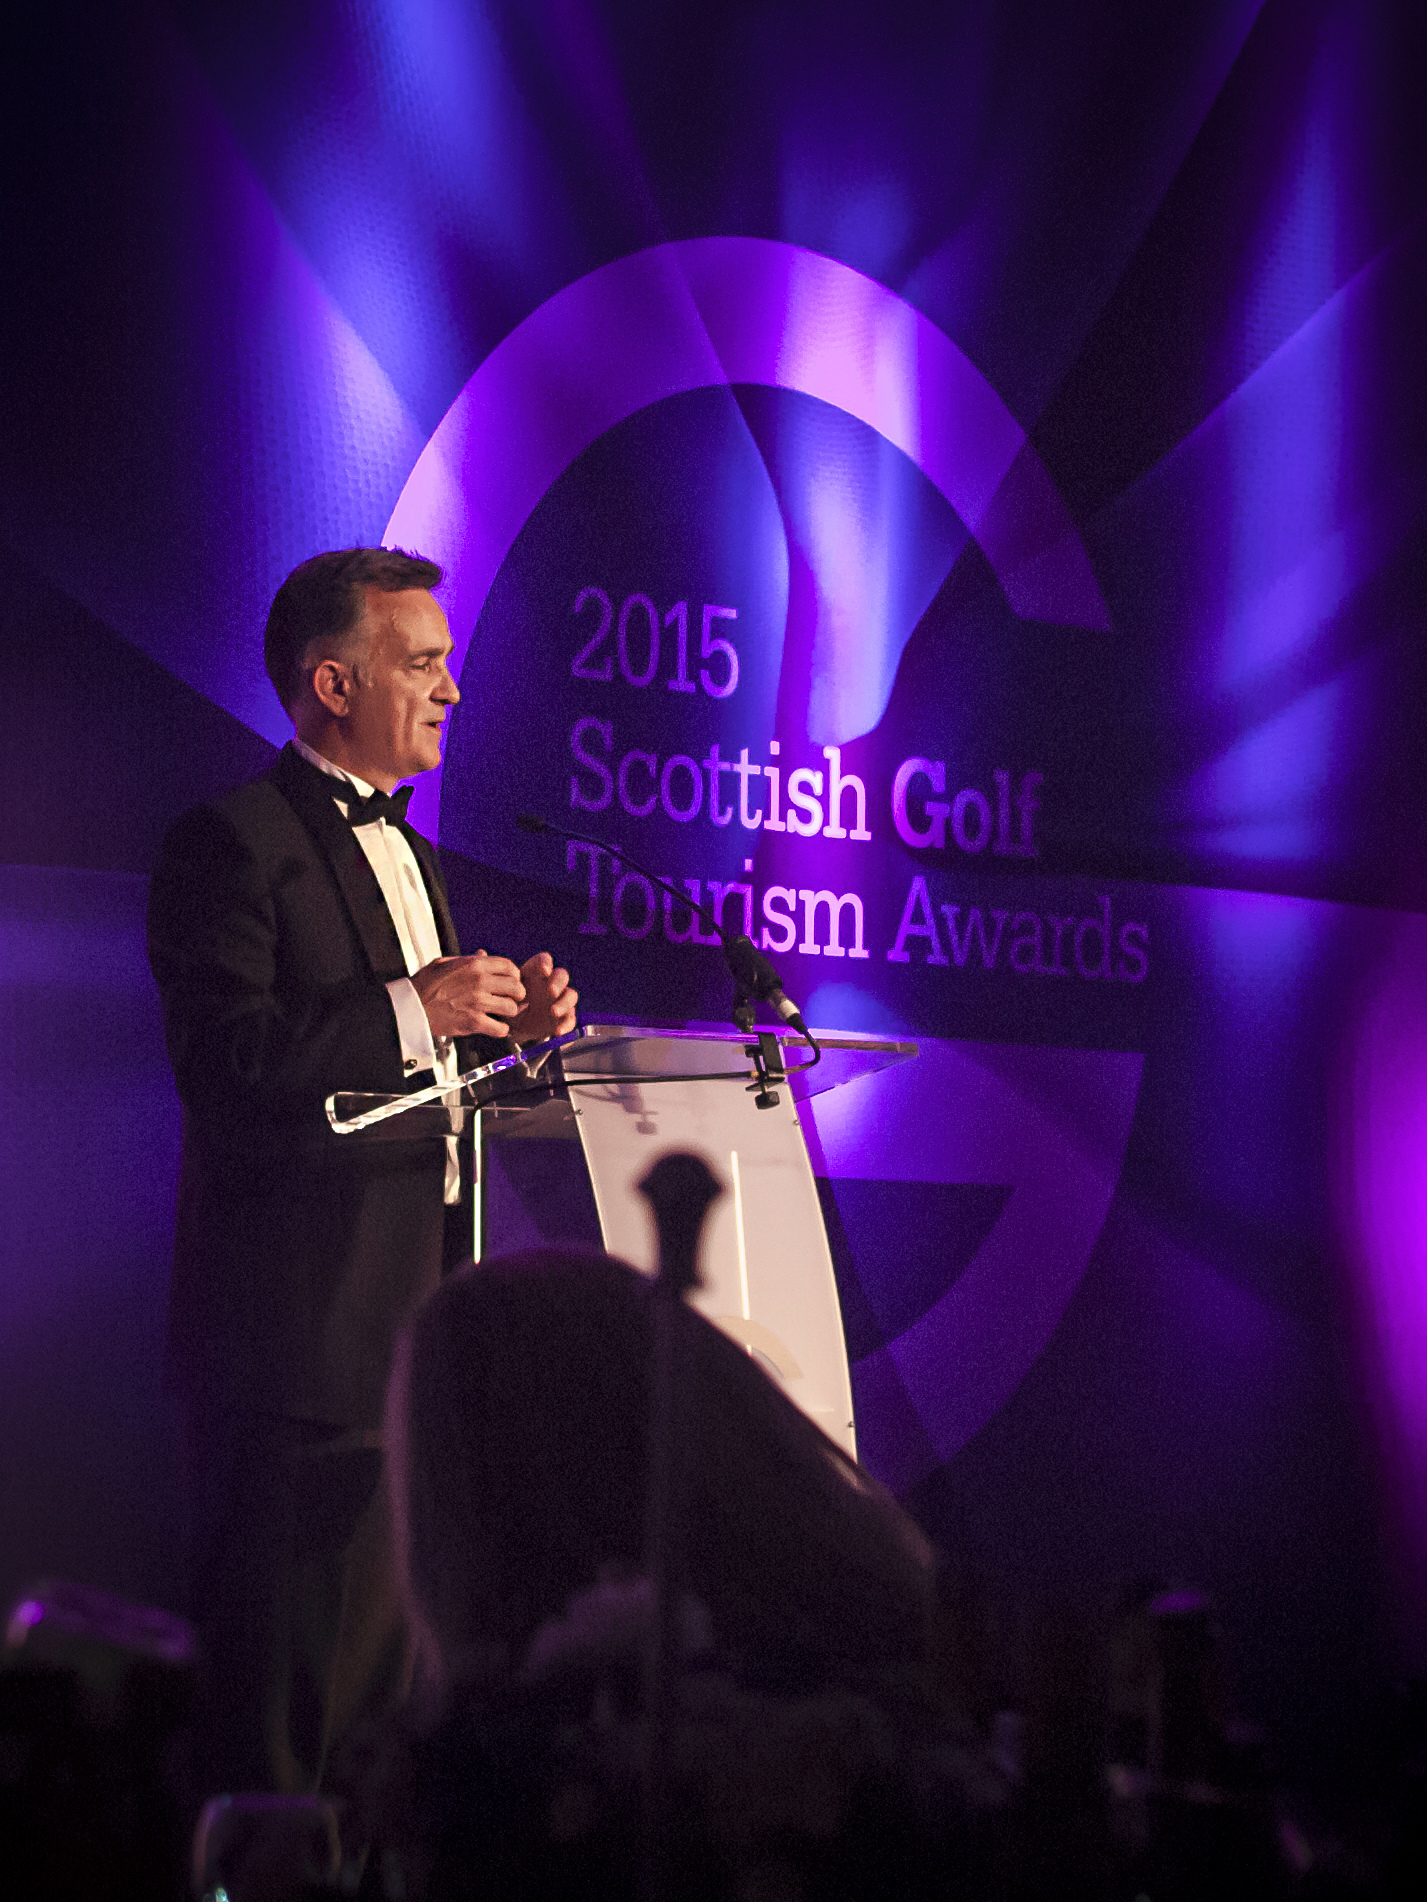 PerryGolf Co-Founder, Colin Dalgleish, receives a Special Recognition Award at the 2015 Scottish Golf Tourism Awards